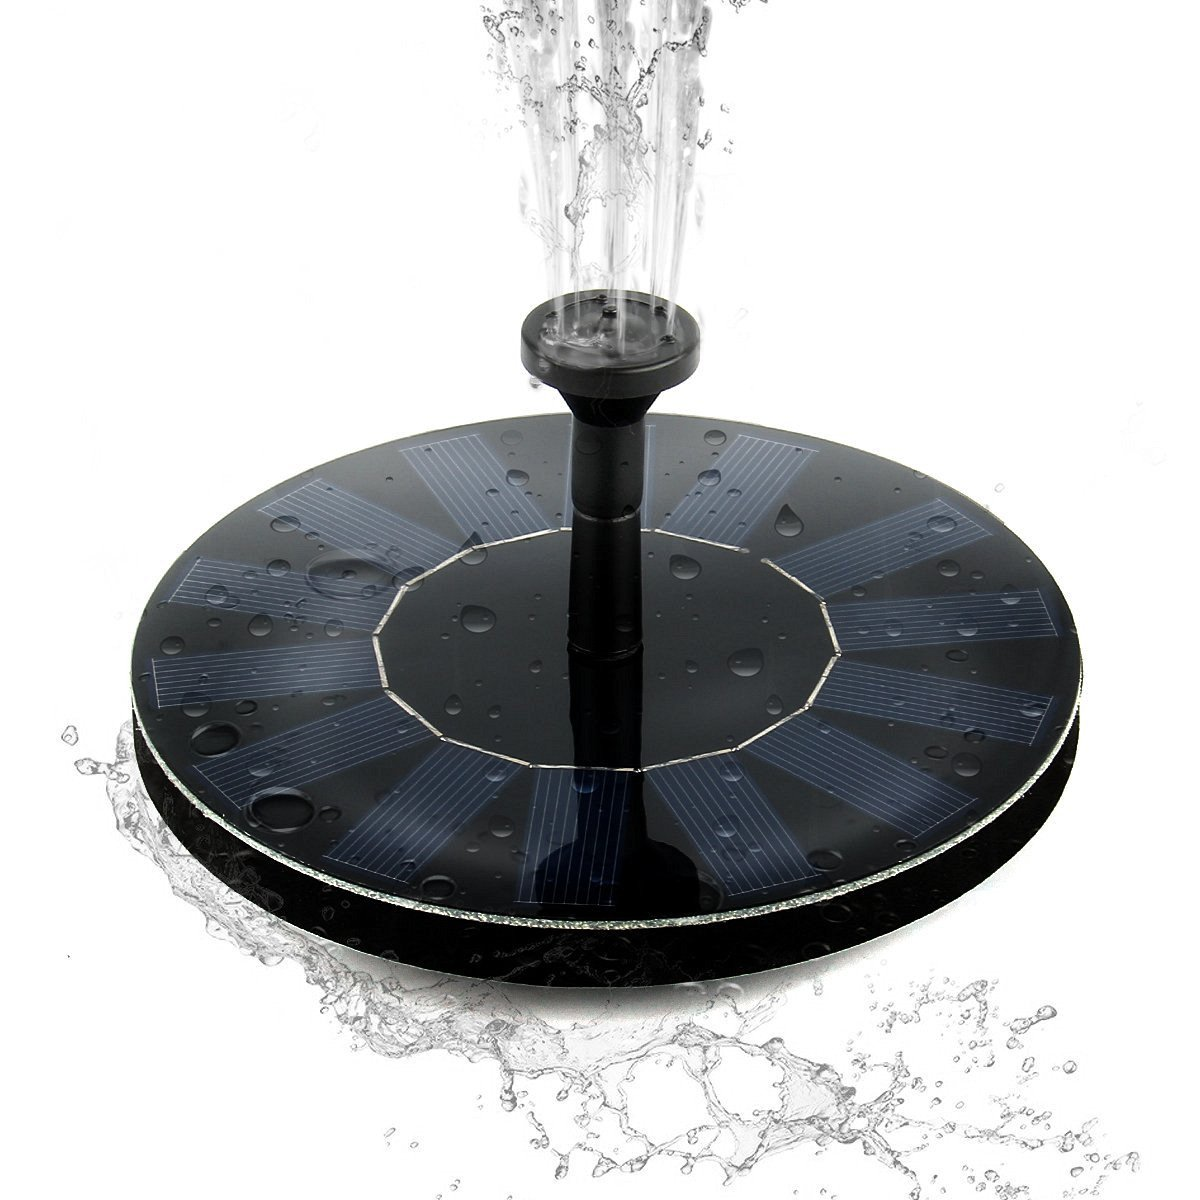 Aikeec Solar Fountain Water Pump,Solar Water Pump Standing Bird Bath Fountain Pump For Garden And Patio,Solar Panel Kit Water Pump